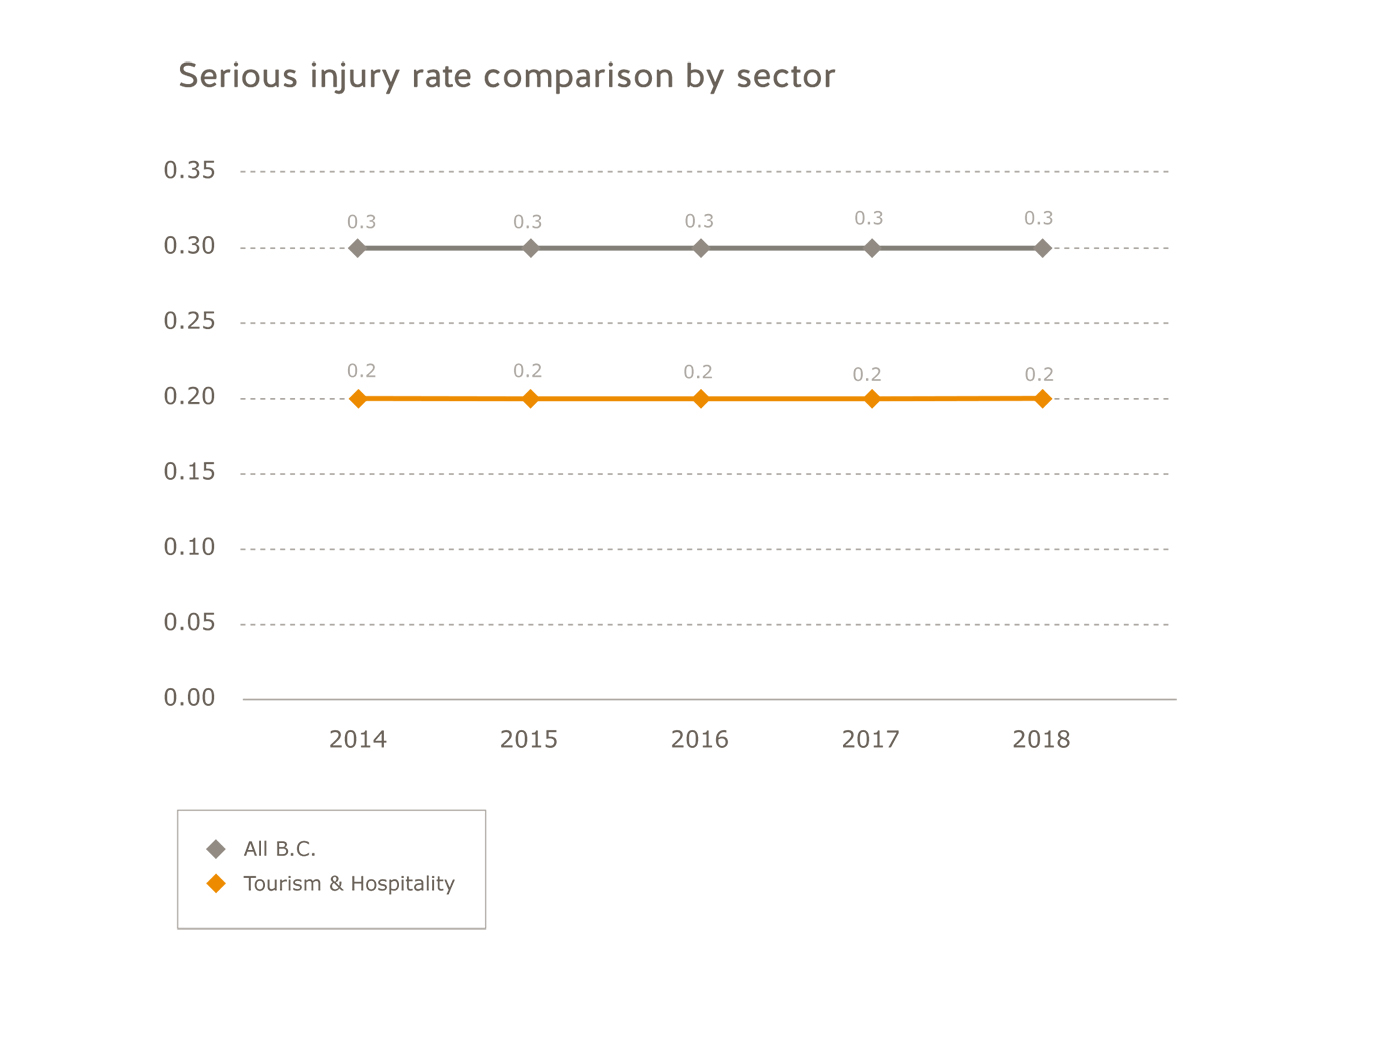 Tourism and hospitality industry serious injury rate comparison by sector for 2014 to 2018. All B.C.: 2014=0.3; 2015=0.3; 2016=0.3; 2017=0.3/2018=0.3. Tourism and hospitality: 2014=0.2; 2015=0.2; 2016=0.2; 2017=0.2; 2018=0.2